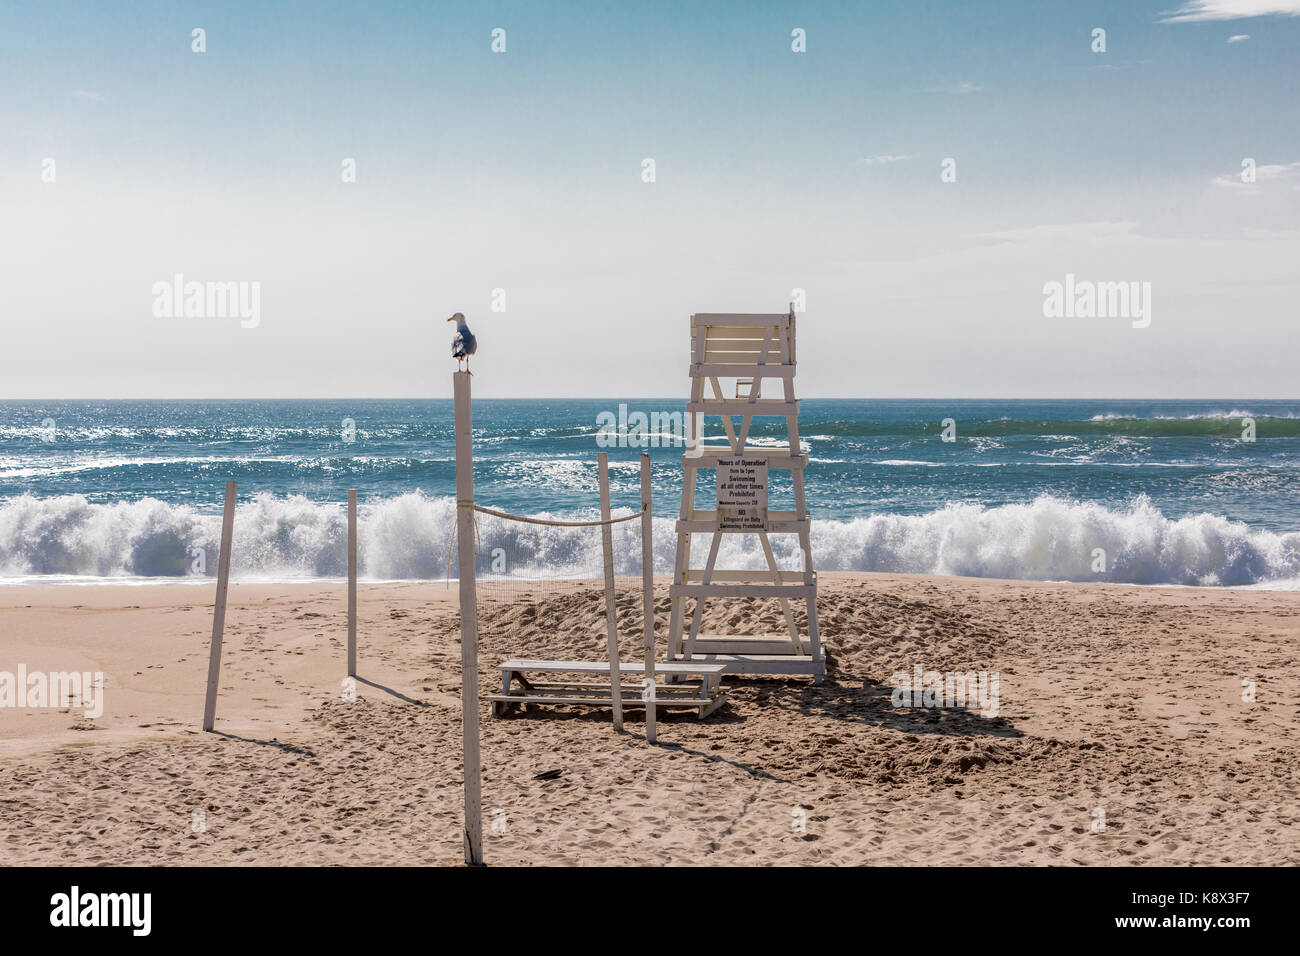 empty life guard stand on an east hampton beach in eastern long island, ny Stock Photo